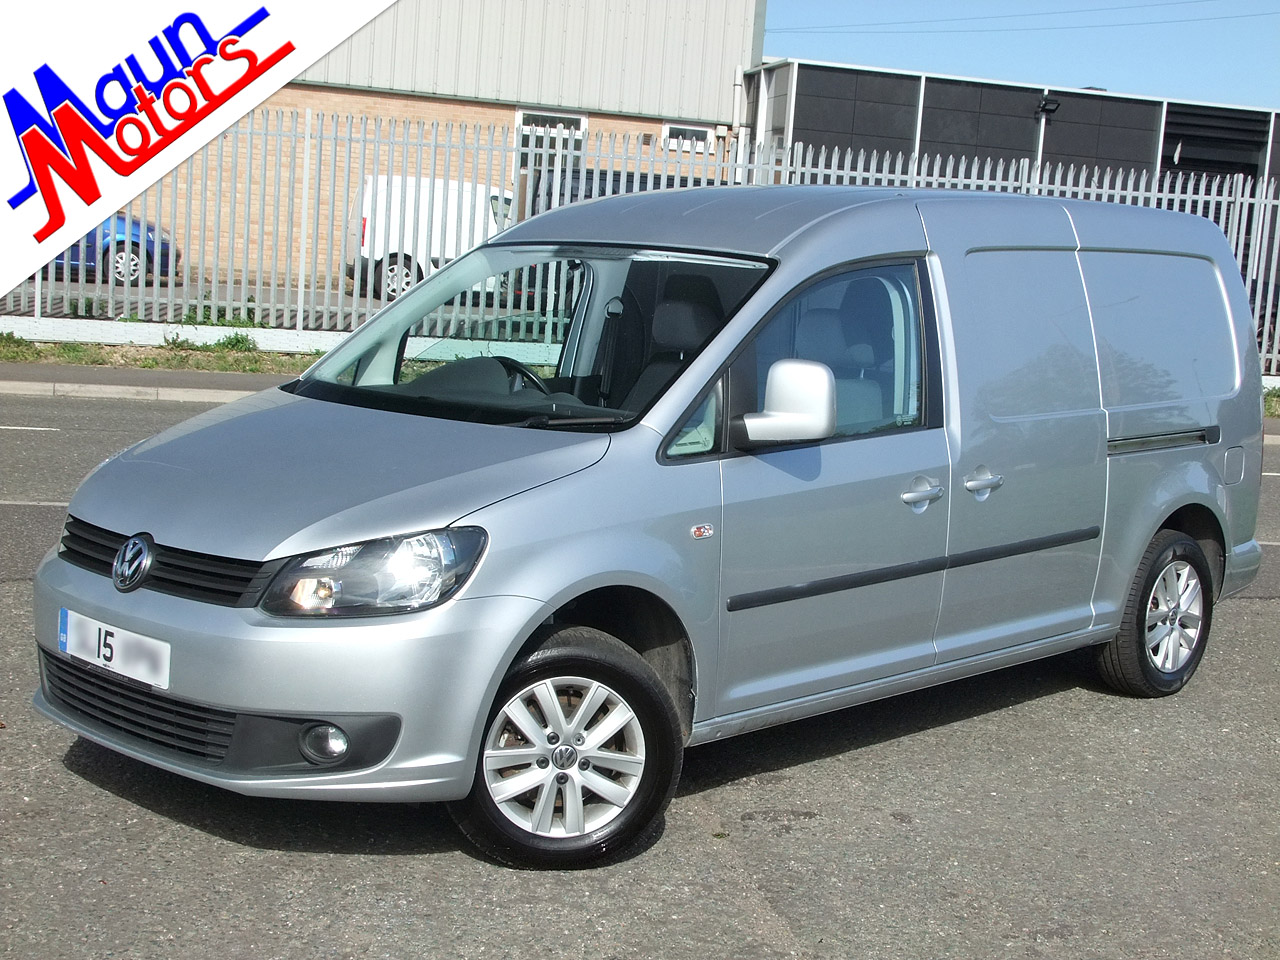 VW Caddy used vans for sale